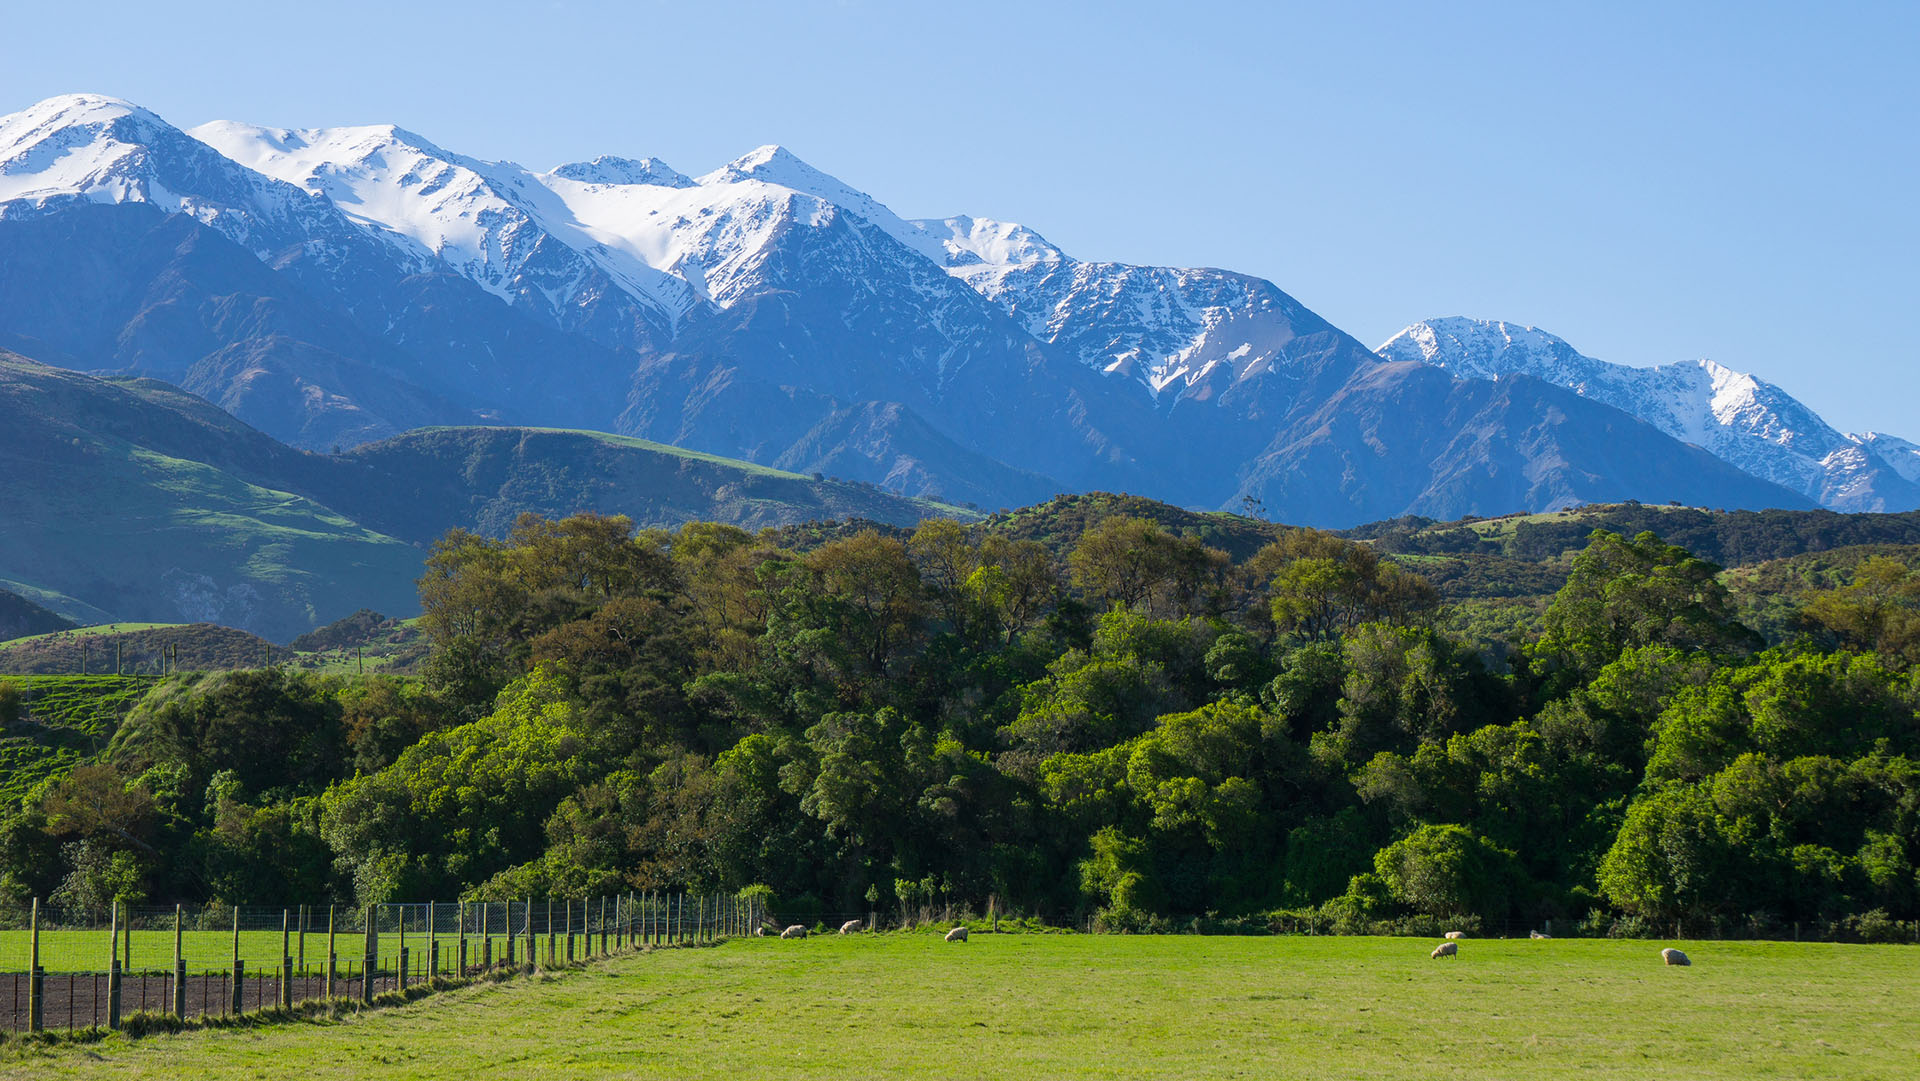 Sheep farm with Kaikoura Mountain in the background